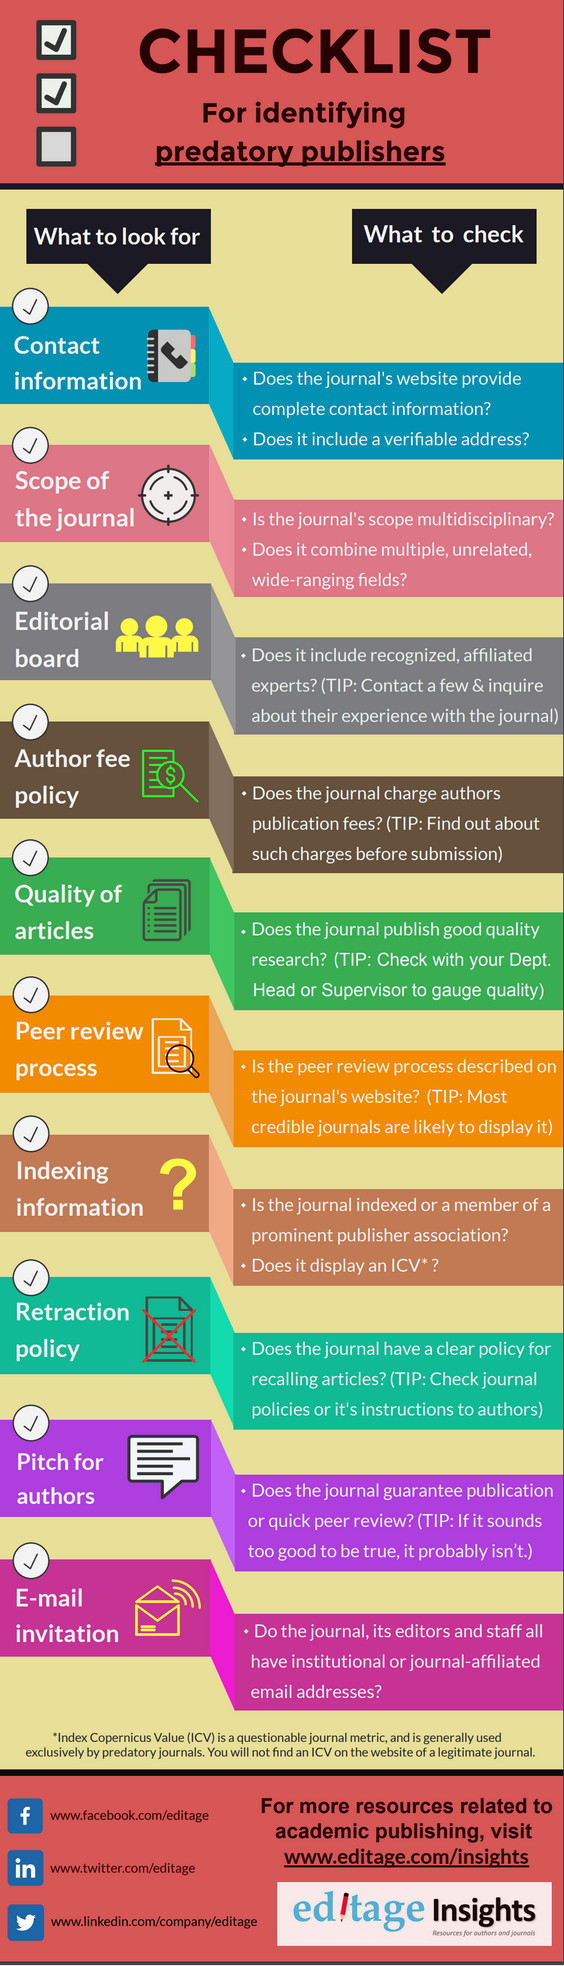 Checklist for identifying predatory publishers with brief questions to ask while considering each point.